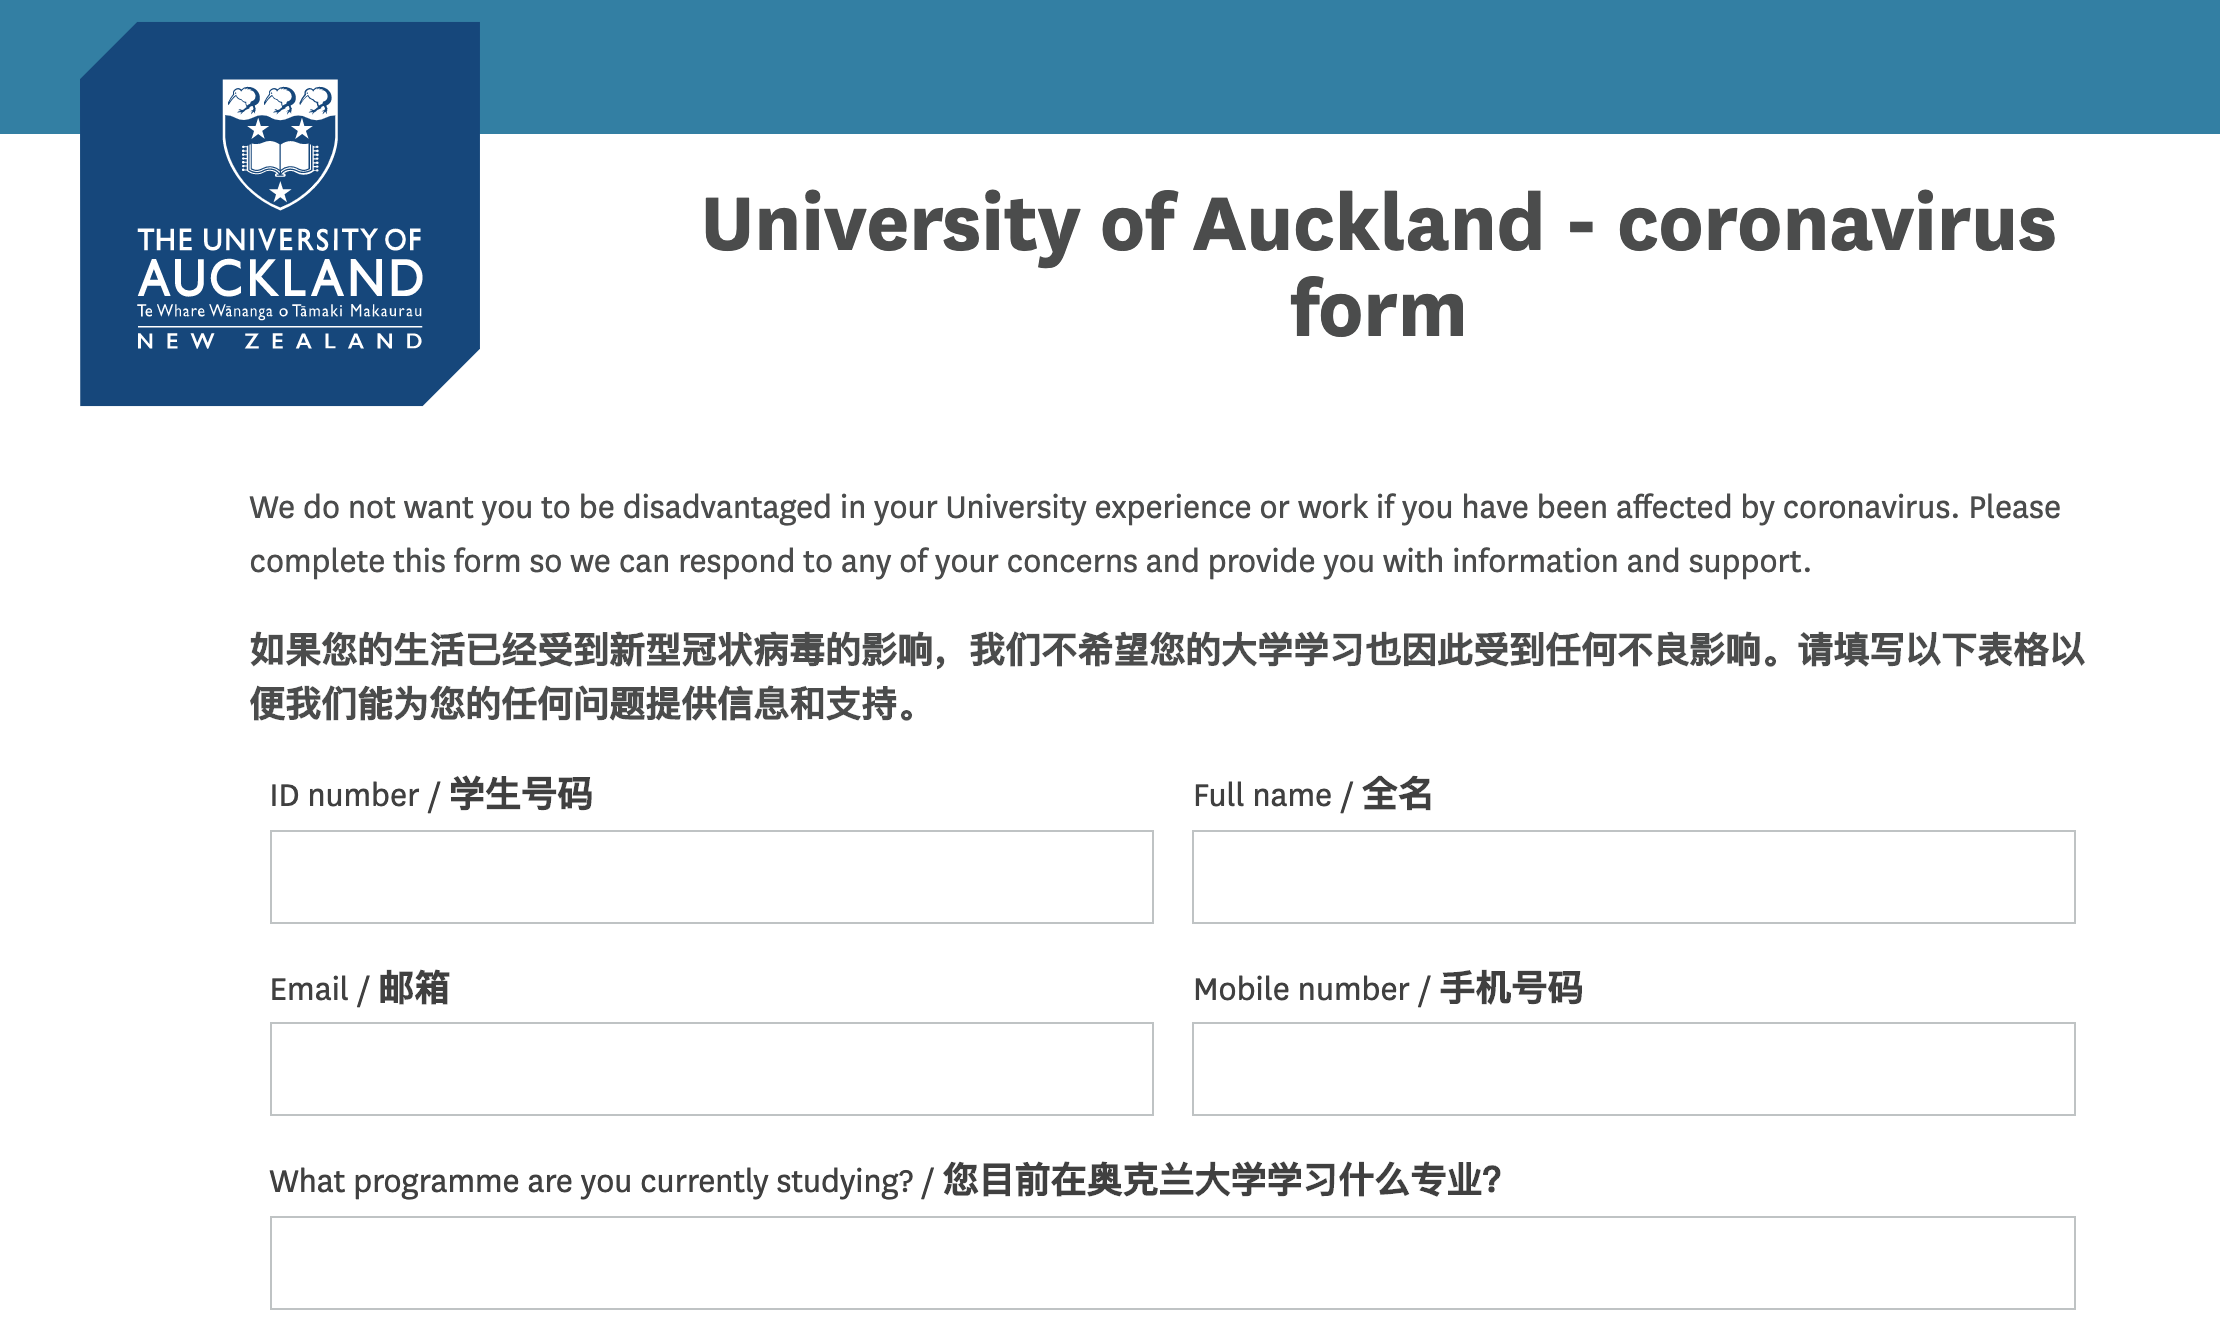 A screenshot of a bilingual form on the University of Auckland website for student's to complete if they have been affected by the coronavirus.